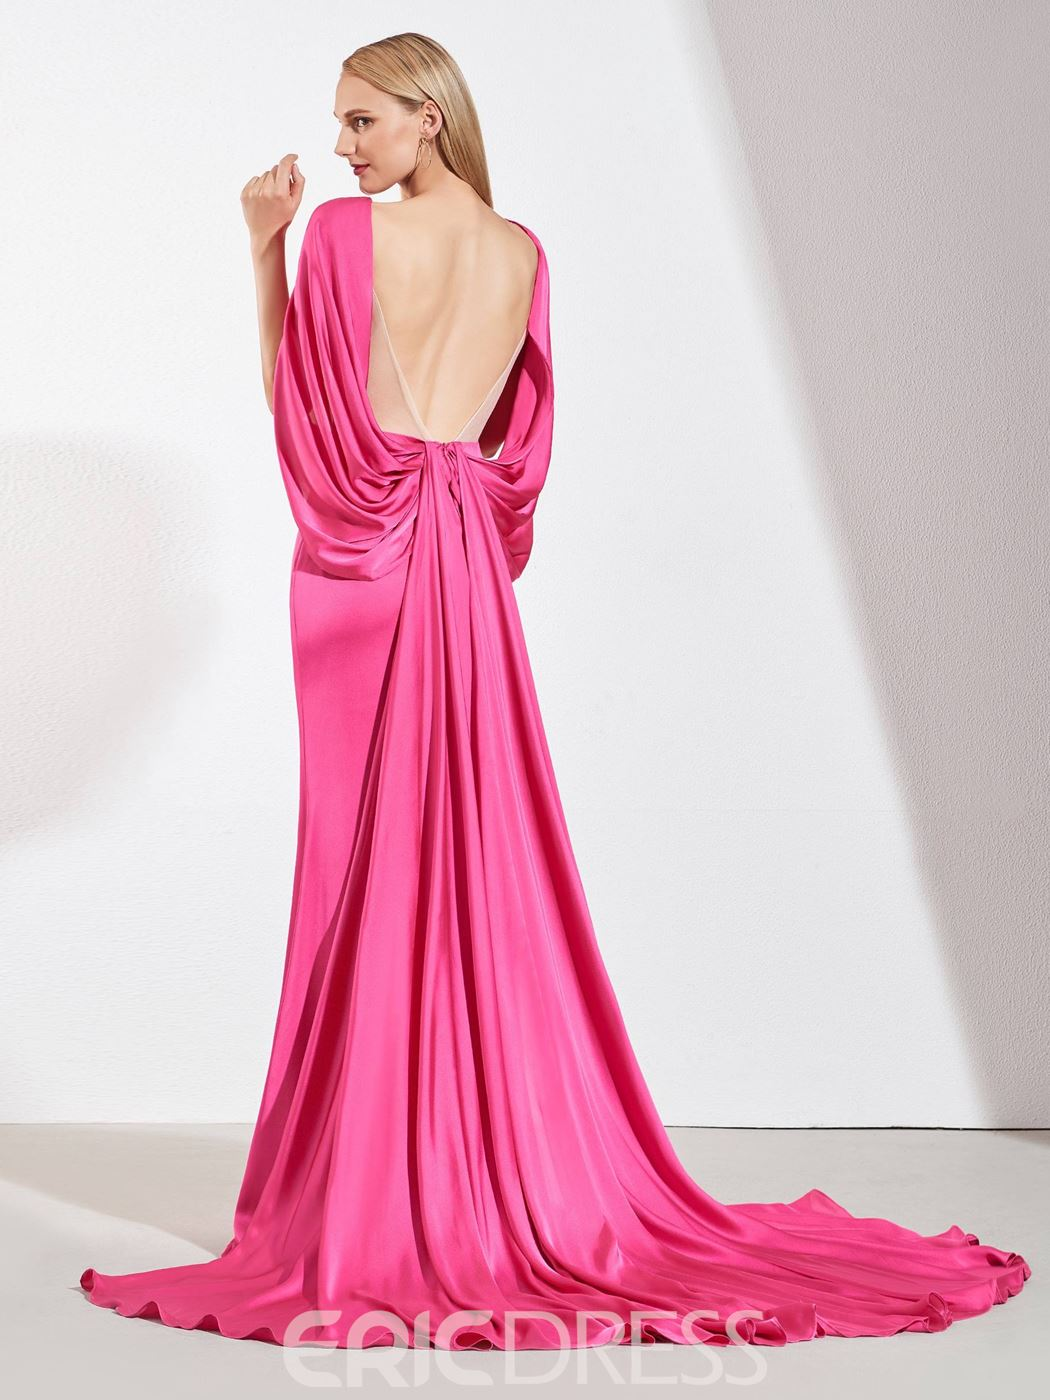 Ericdress Backless Mermaid Evening Dress With Court Train